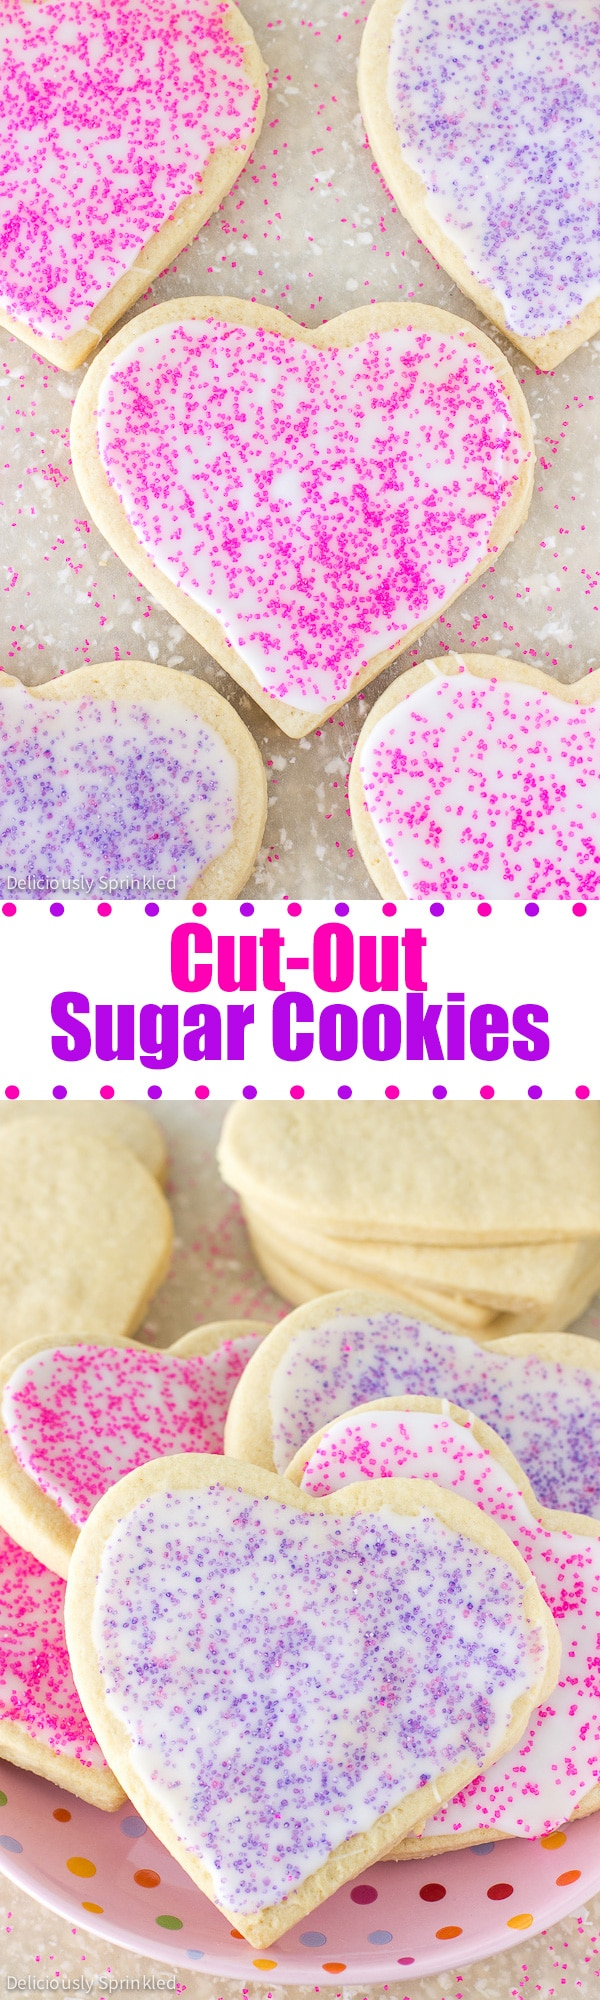 THE BEST CUT-OUT SUGAR COOKIES RECIPE